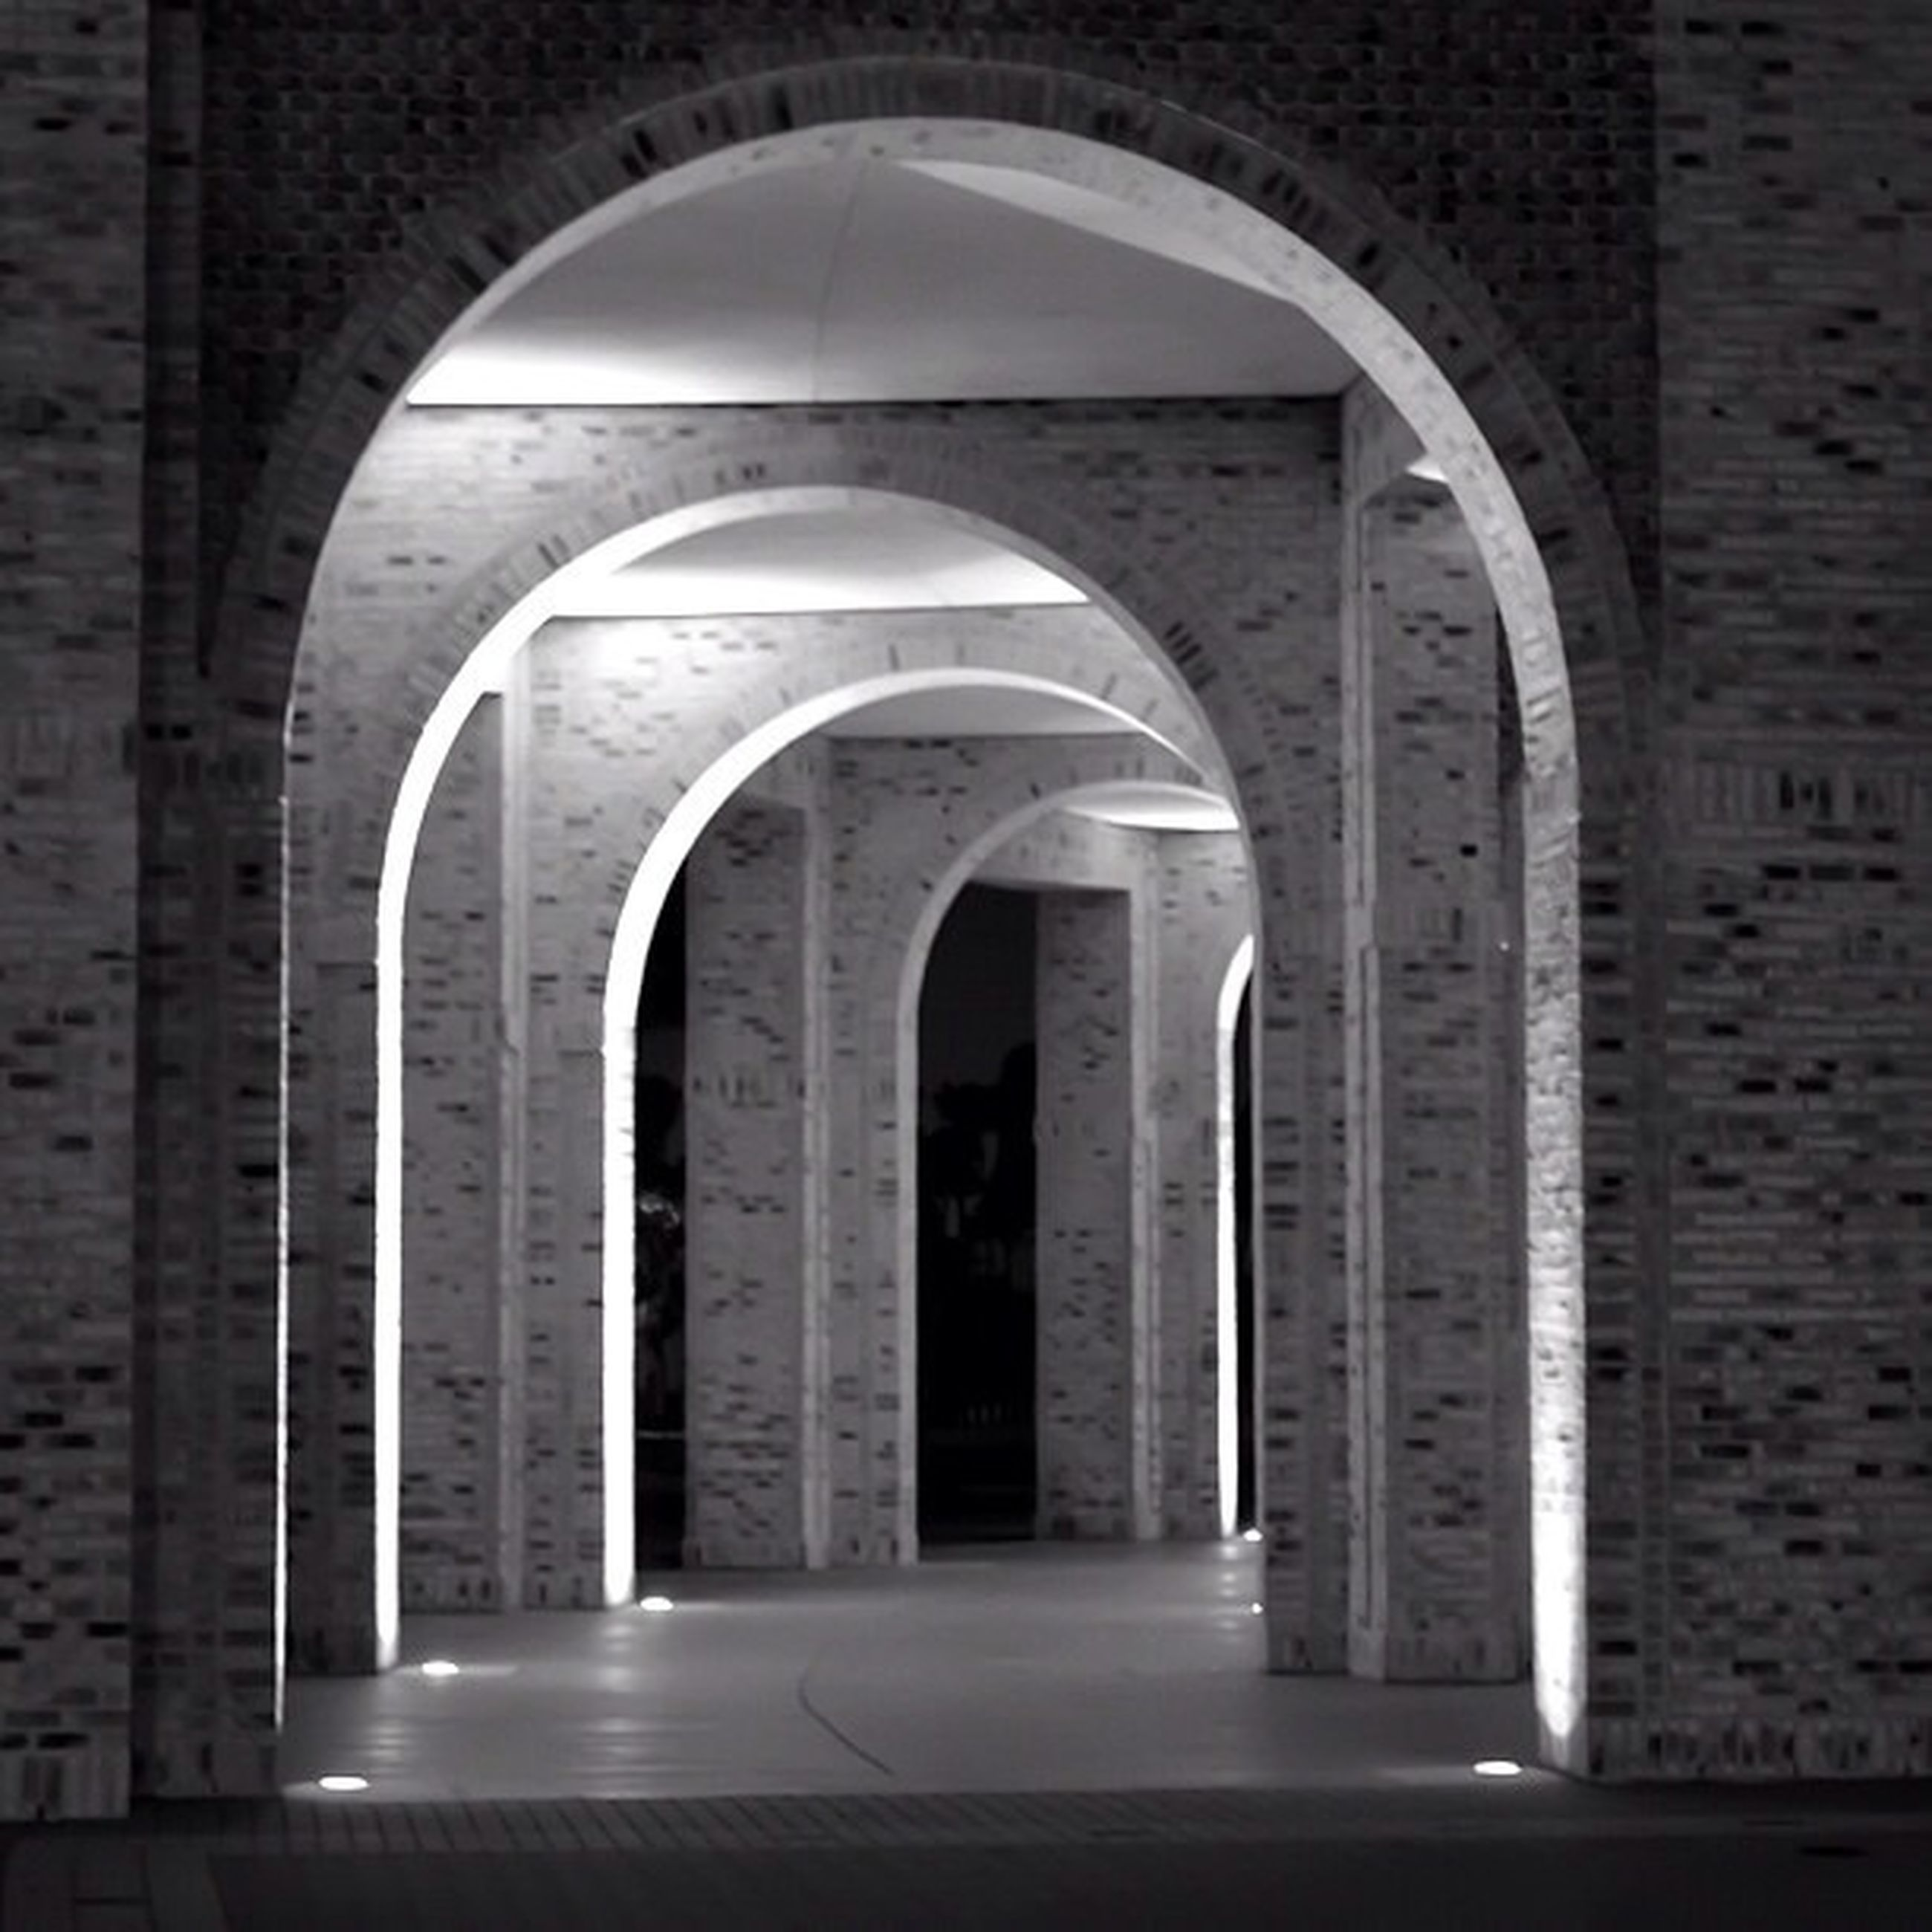 arch, architecture, built structure, indoors, building exterior, archway, window, door, entrance, building, arched, day, no people, sunlight, doorway, house, history, closed, wall, gate